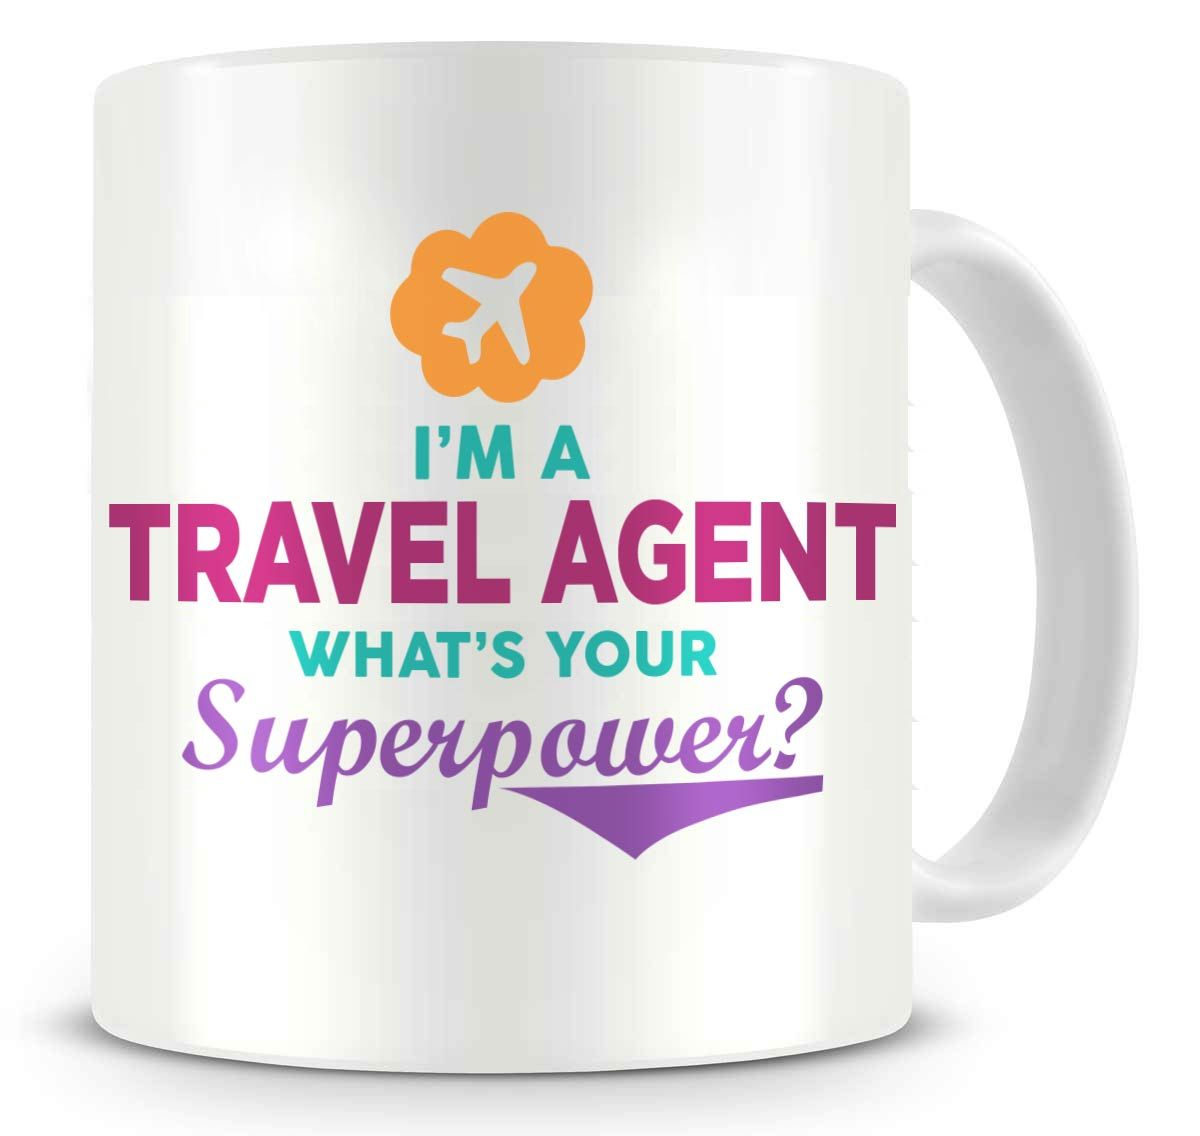 I'm A Travel Agent What's Your Superpower - Ceramic Coffee